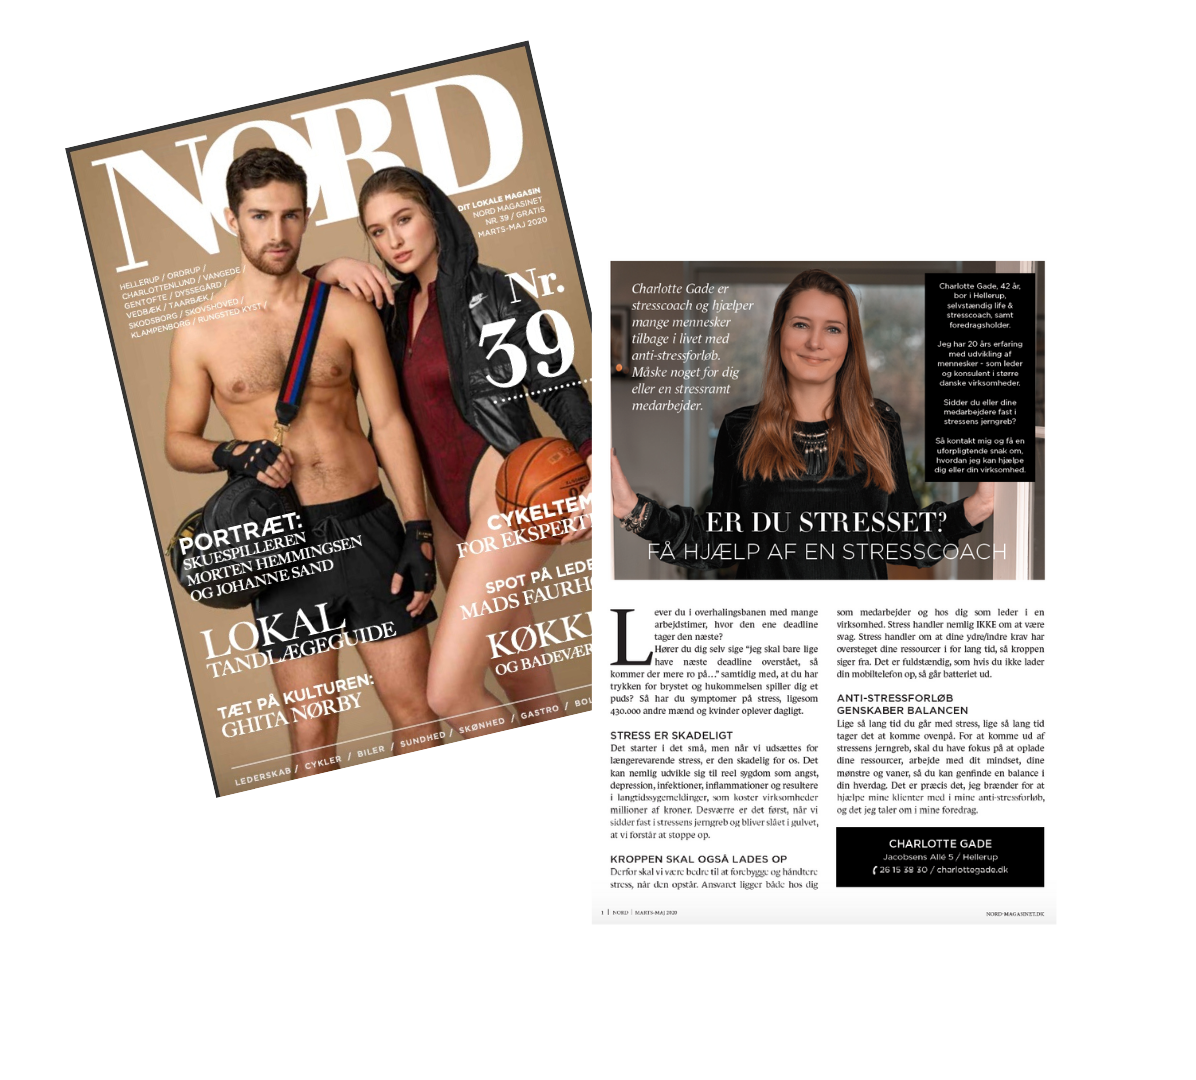 Charlotte Gade Nord Magasin